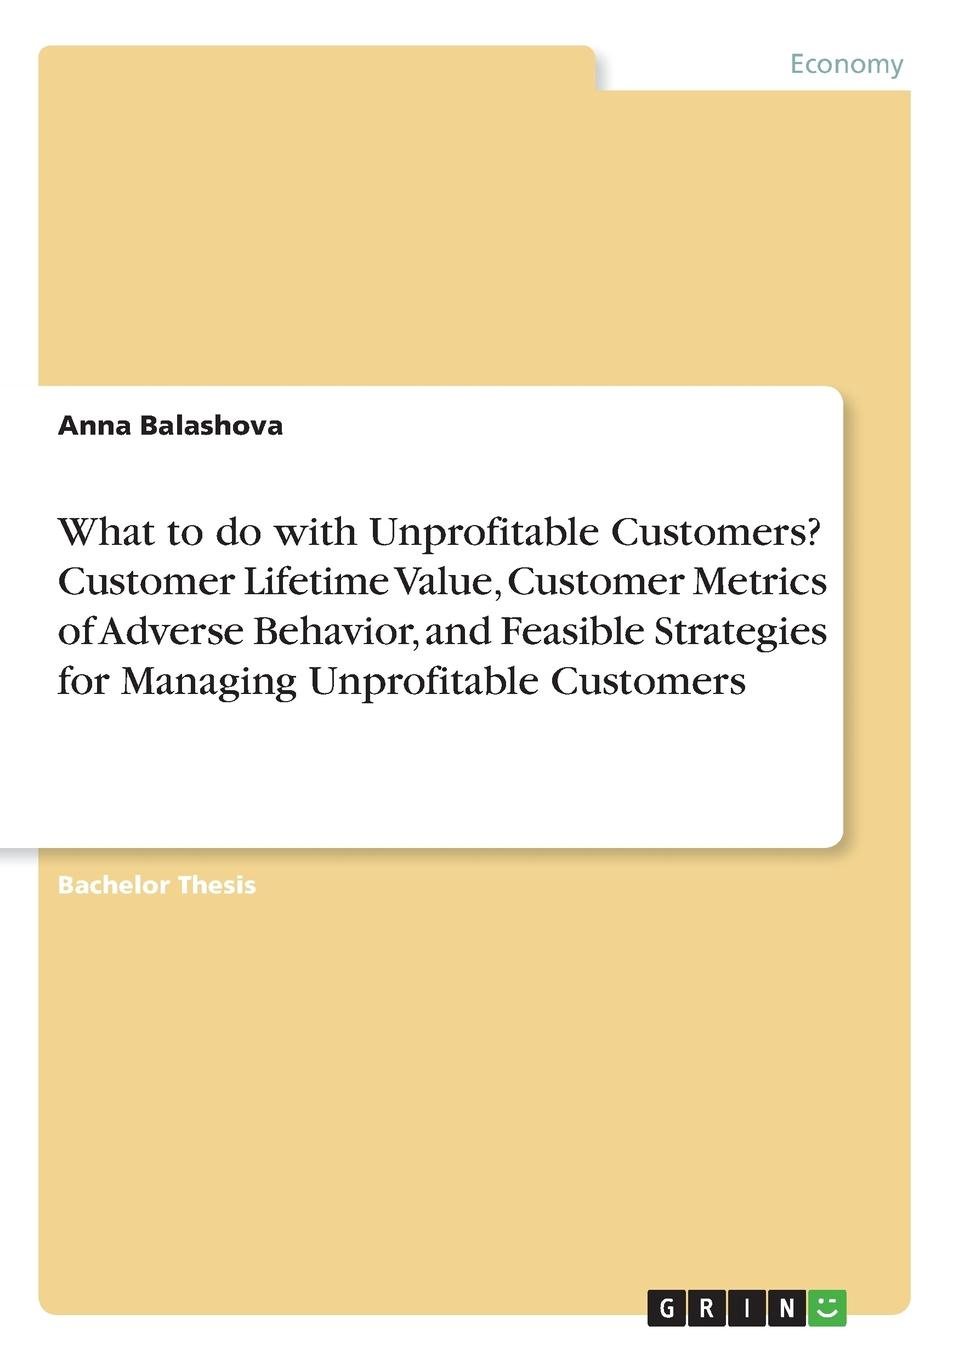 Anna Balashova What to do with Unprofitable Customers. Customer Lifetime Value, Customer Metrics of Adverse Behavior, and Feasible Strategies for Managing Unprofitable Customers kevin kaiser the blue line imperative what managing for value really means